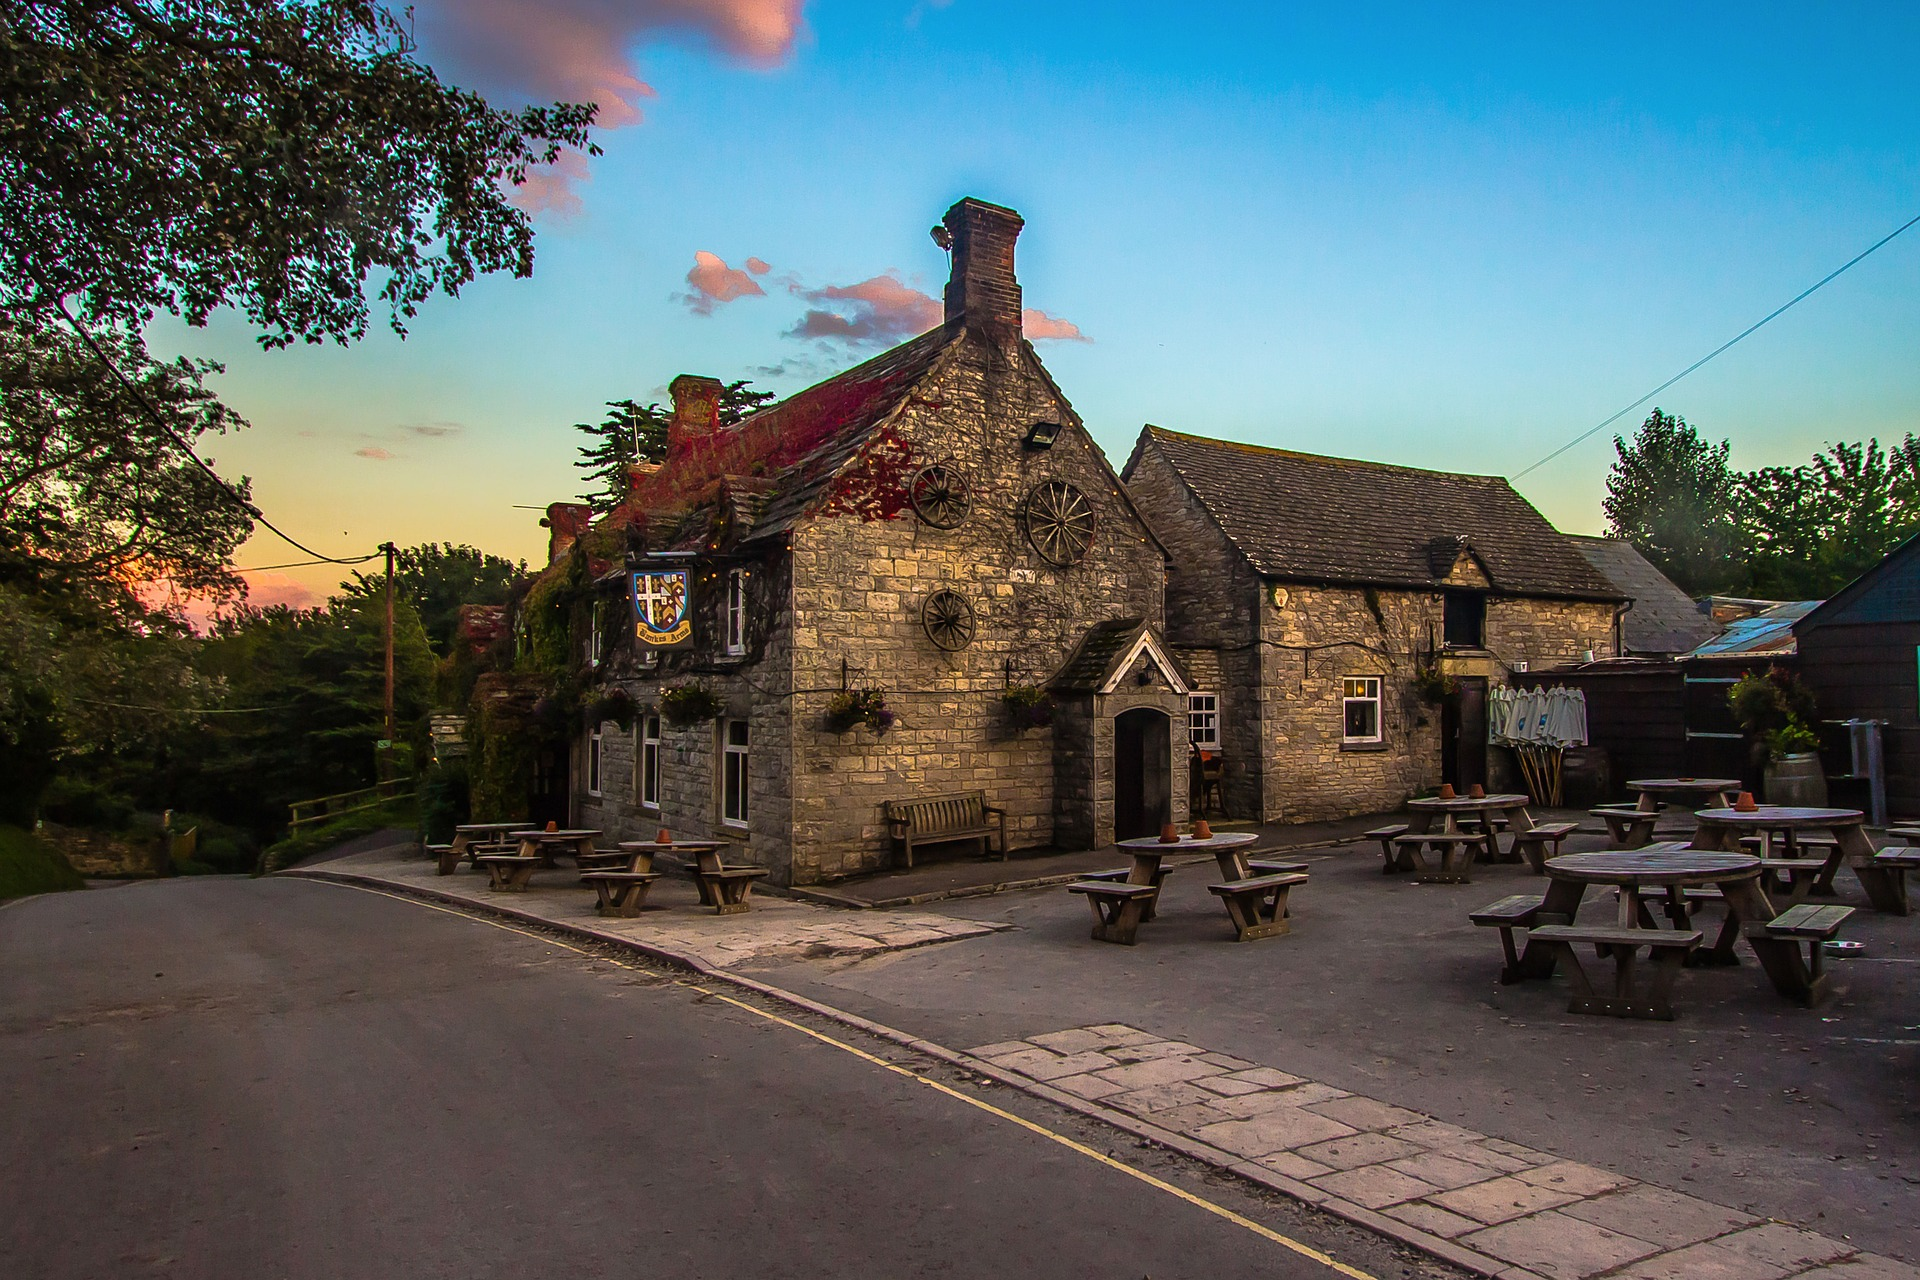 More Than a Pub Programme Re-opens with £2.2m in New Funding